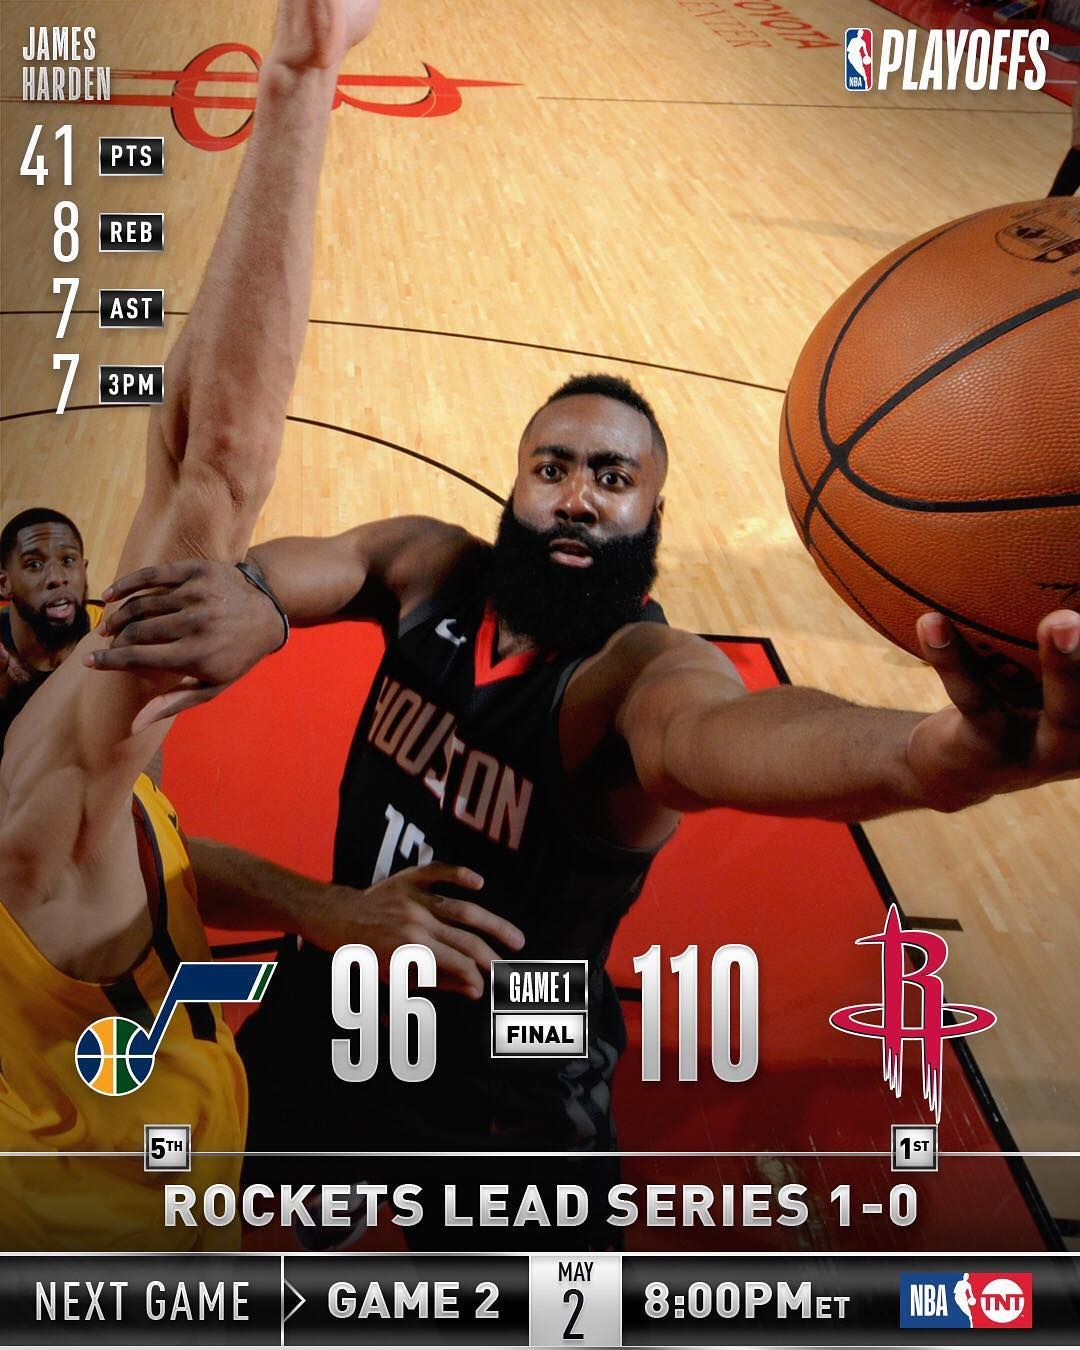 The houstonrockets take 10 series lead, defeat utahjazz